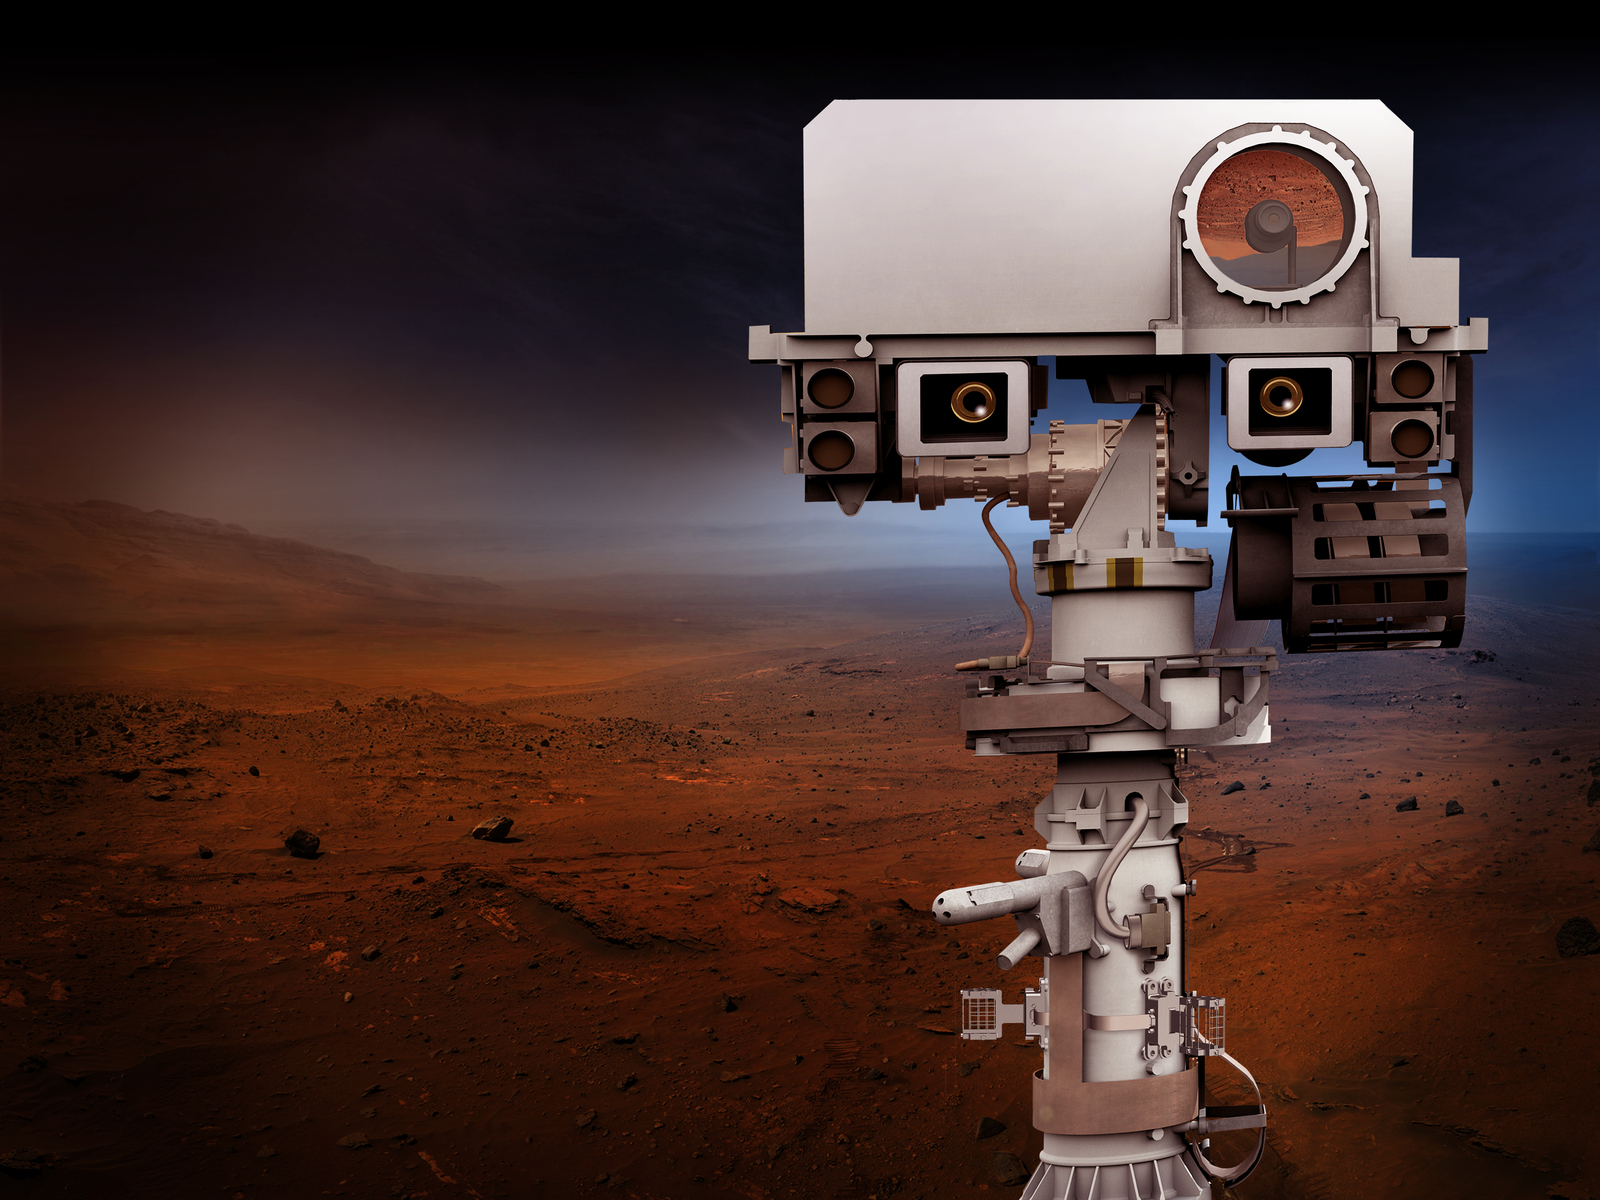 NASA's Mars 2020 Project will re-use the basic engineering of NASA's Mars Science Laboratory/Curiosity to send a different rover to Mars, with new objectives and instruments. This view depicts the top of the 2020 rover's mast.